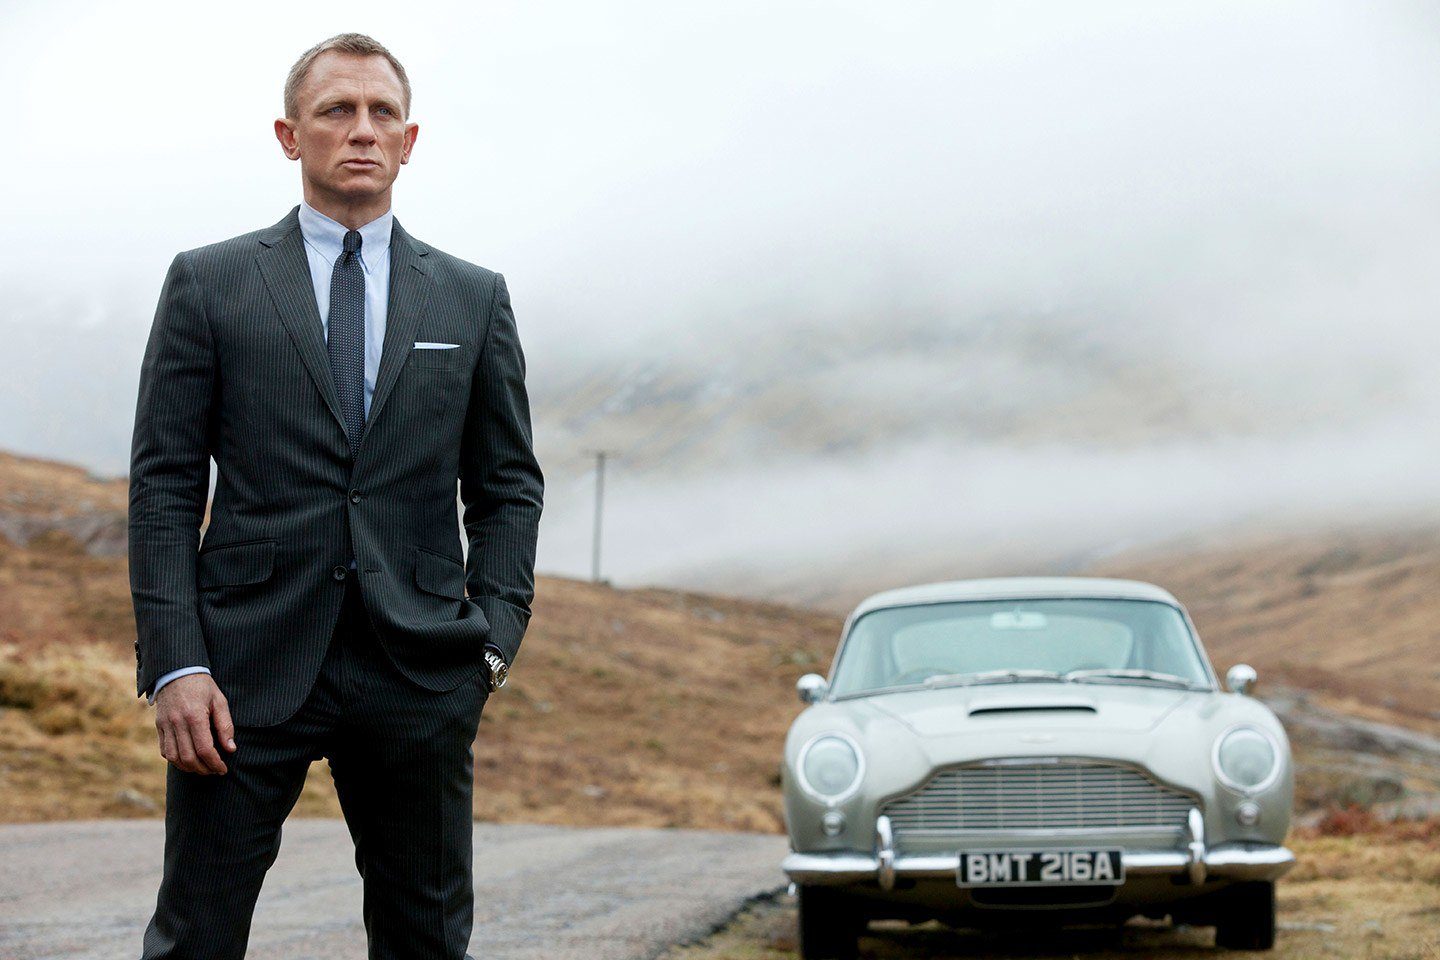 How the Producers Behind James Bond Convinced Daniel Craig to do One More Bond